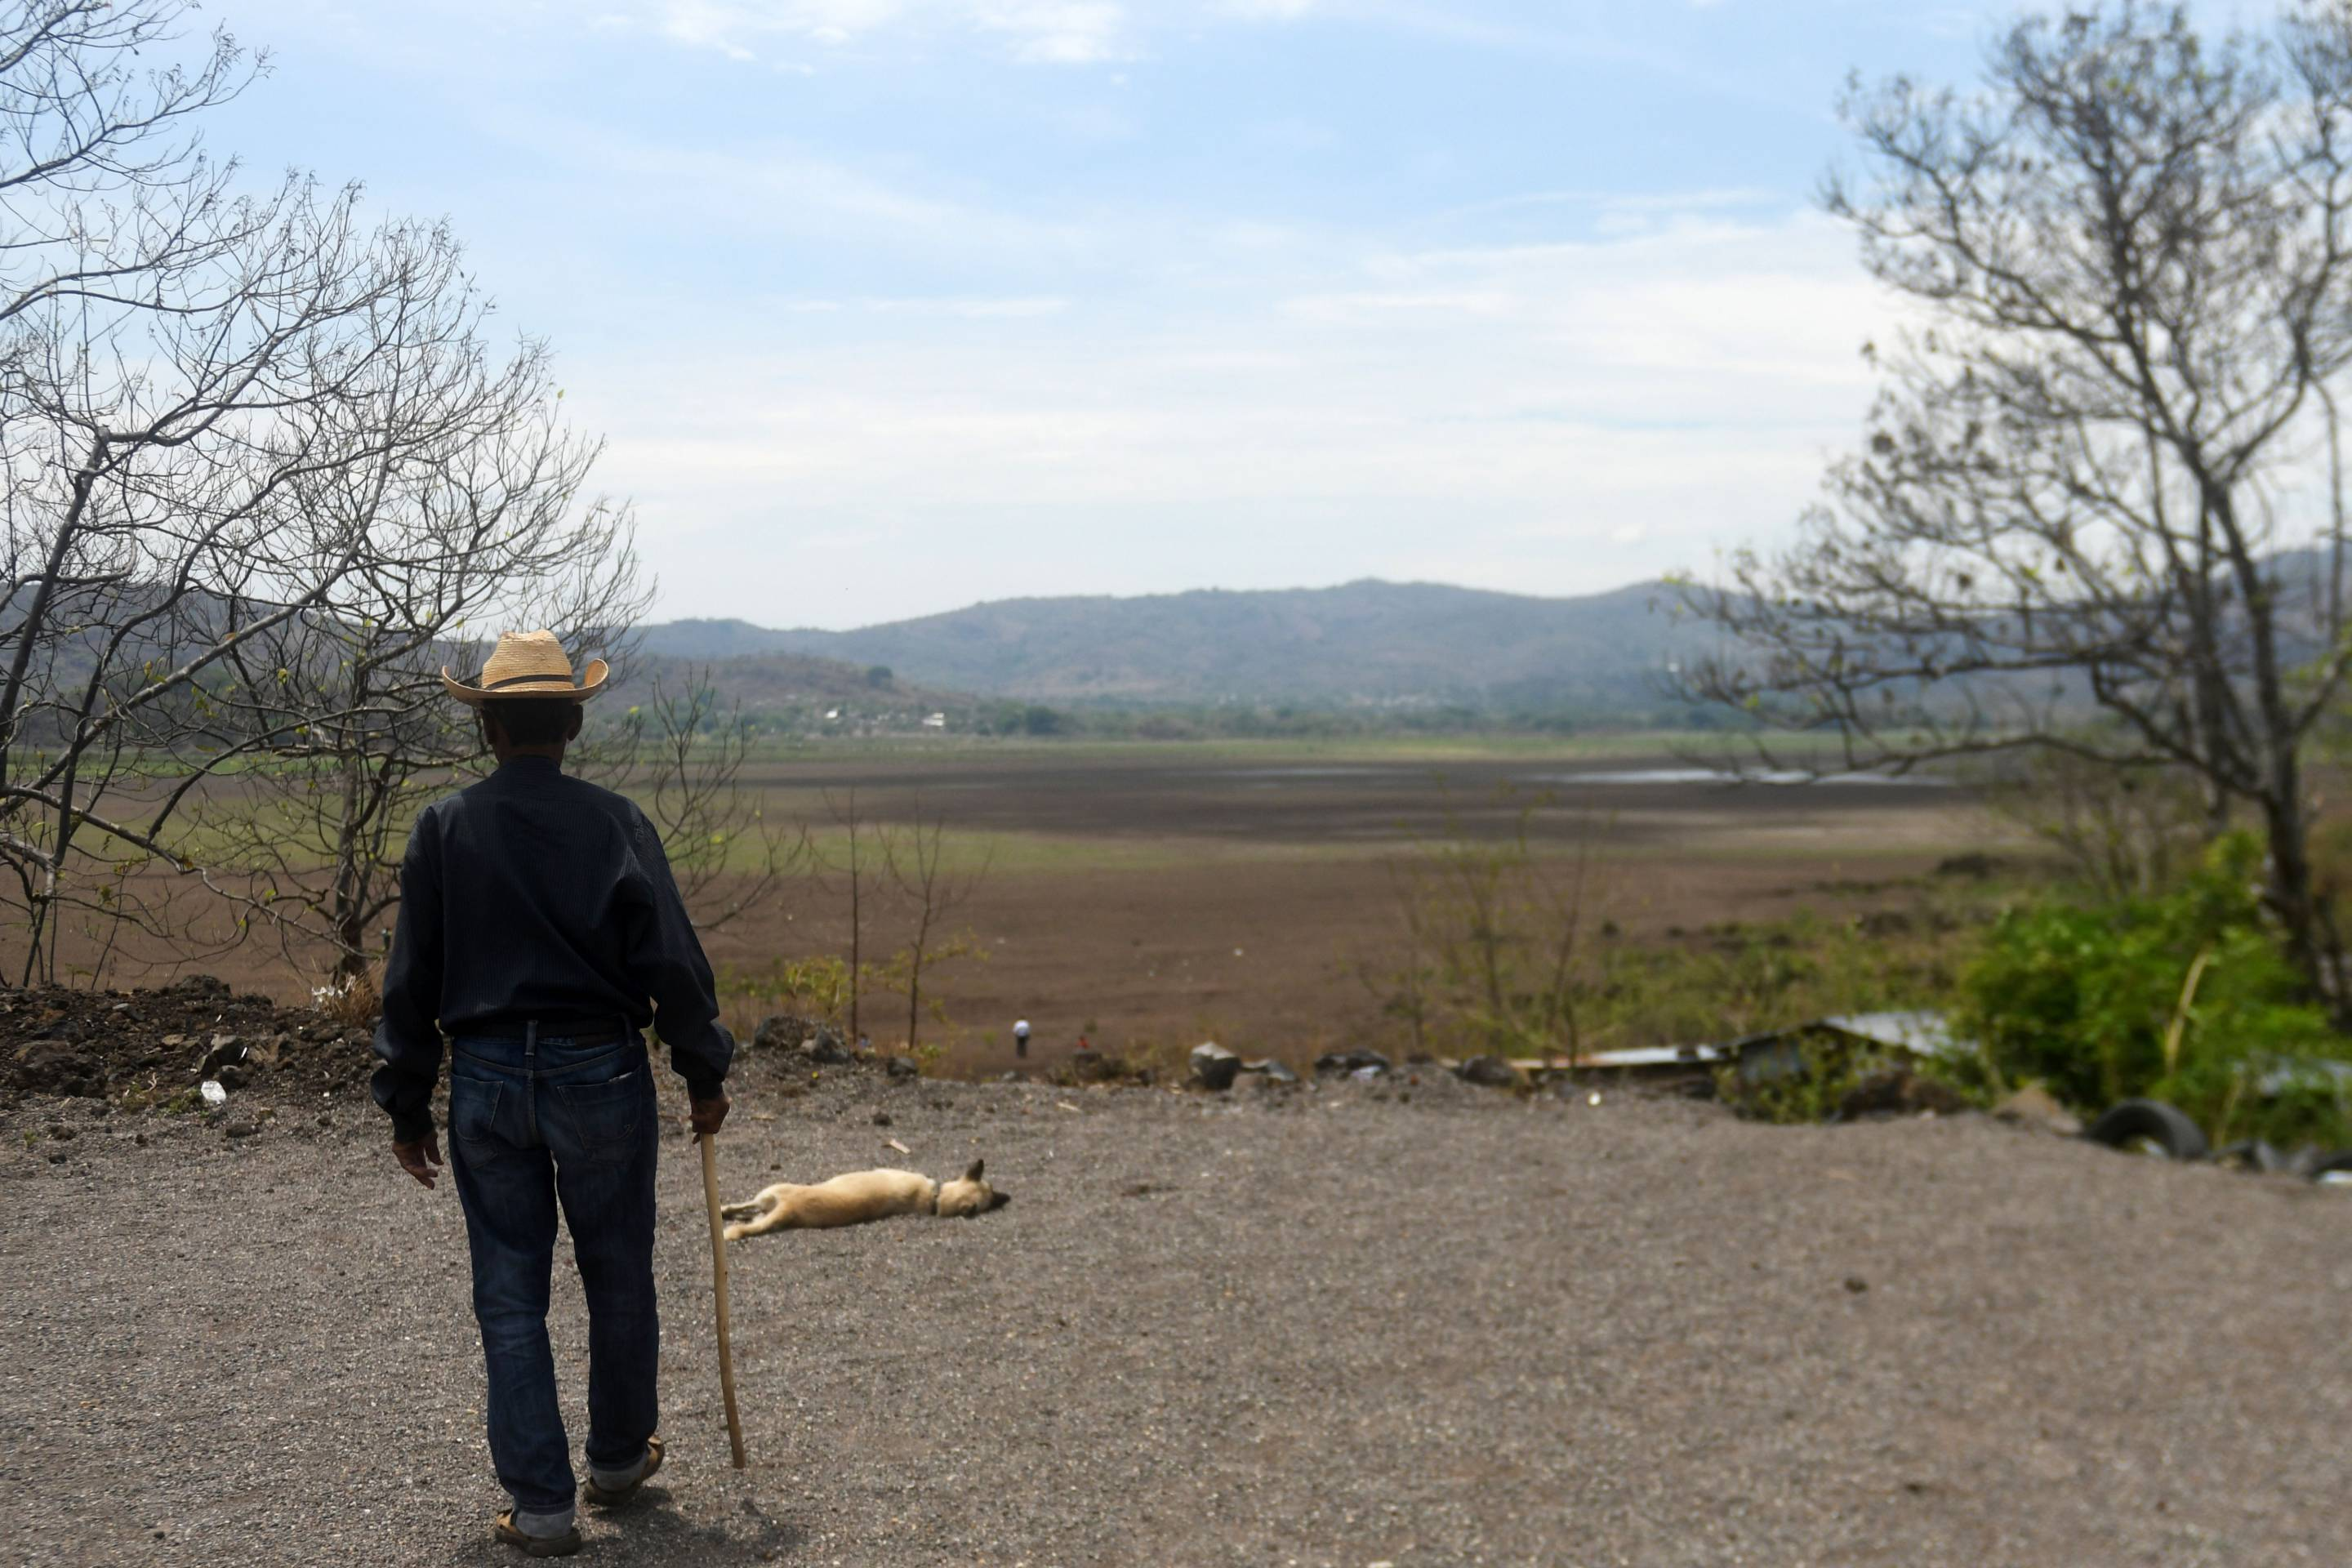 Southeast of Guatemala City, Lake Atescatempa has dried up due to drought and high temperatures.